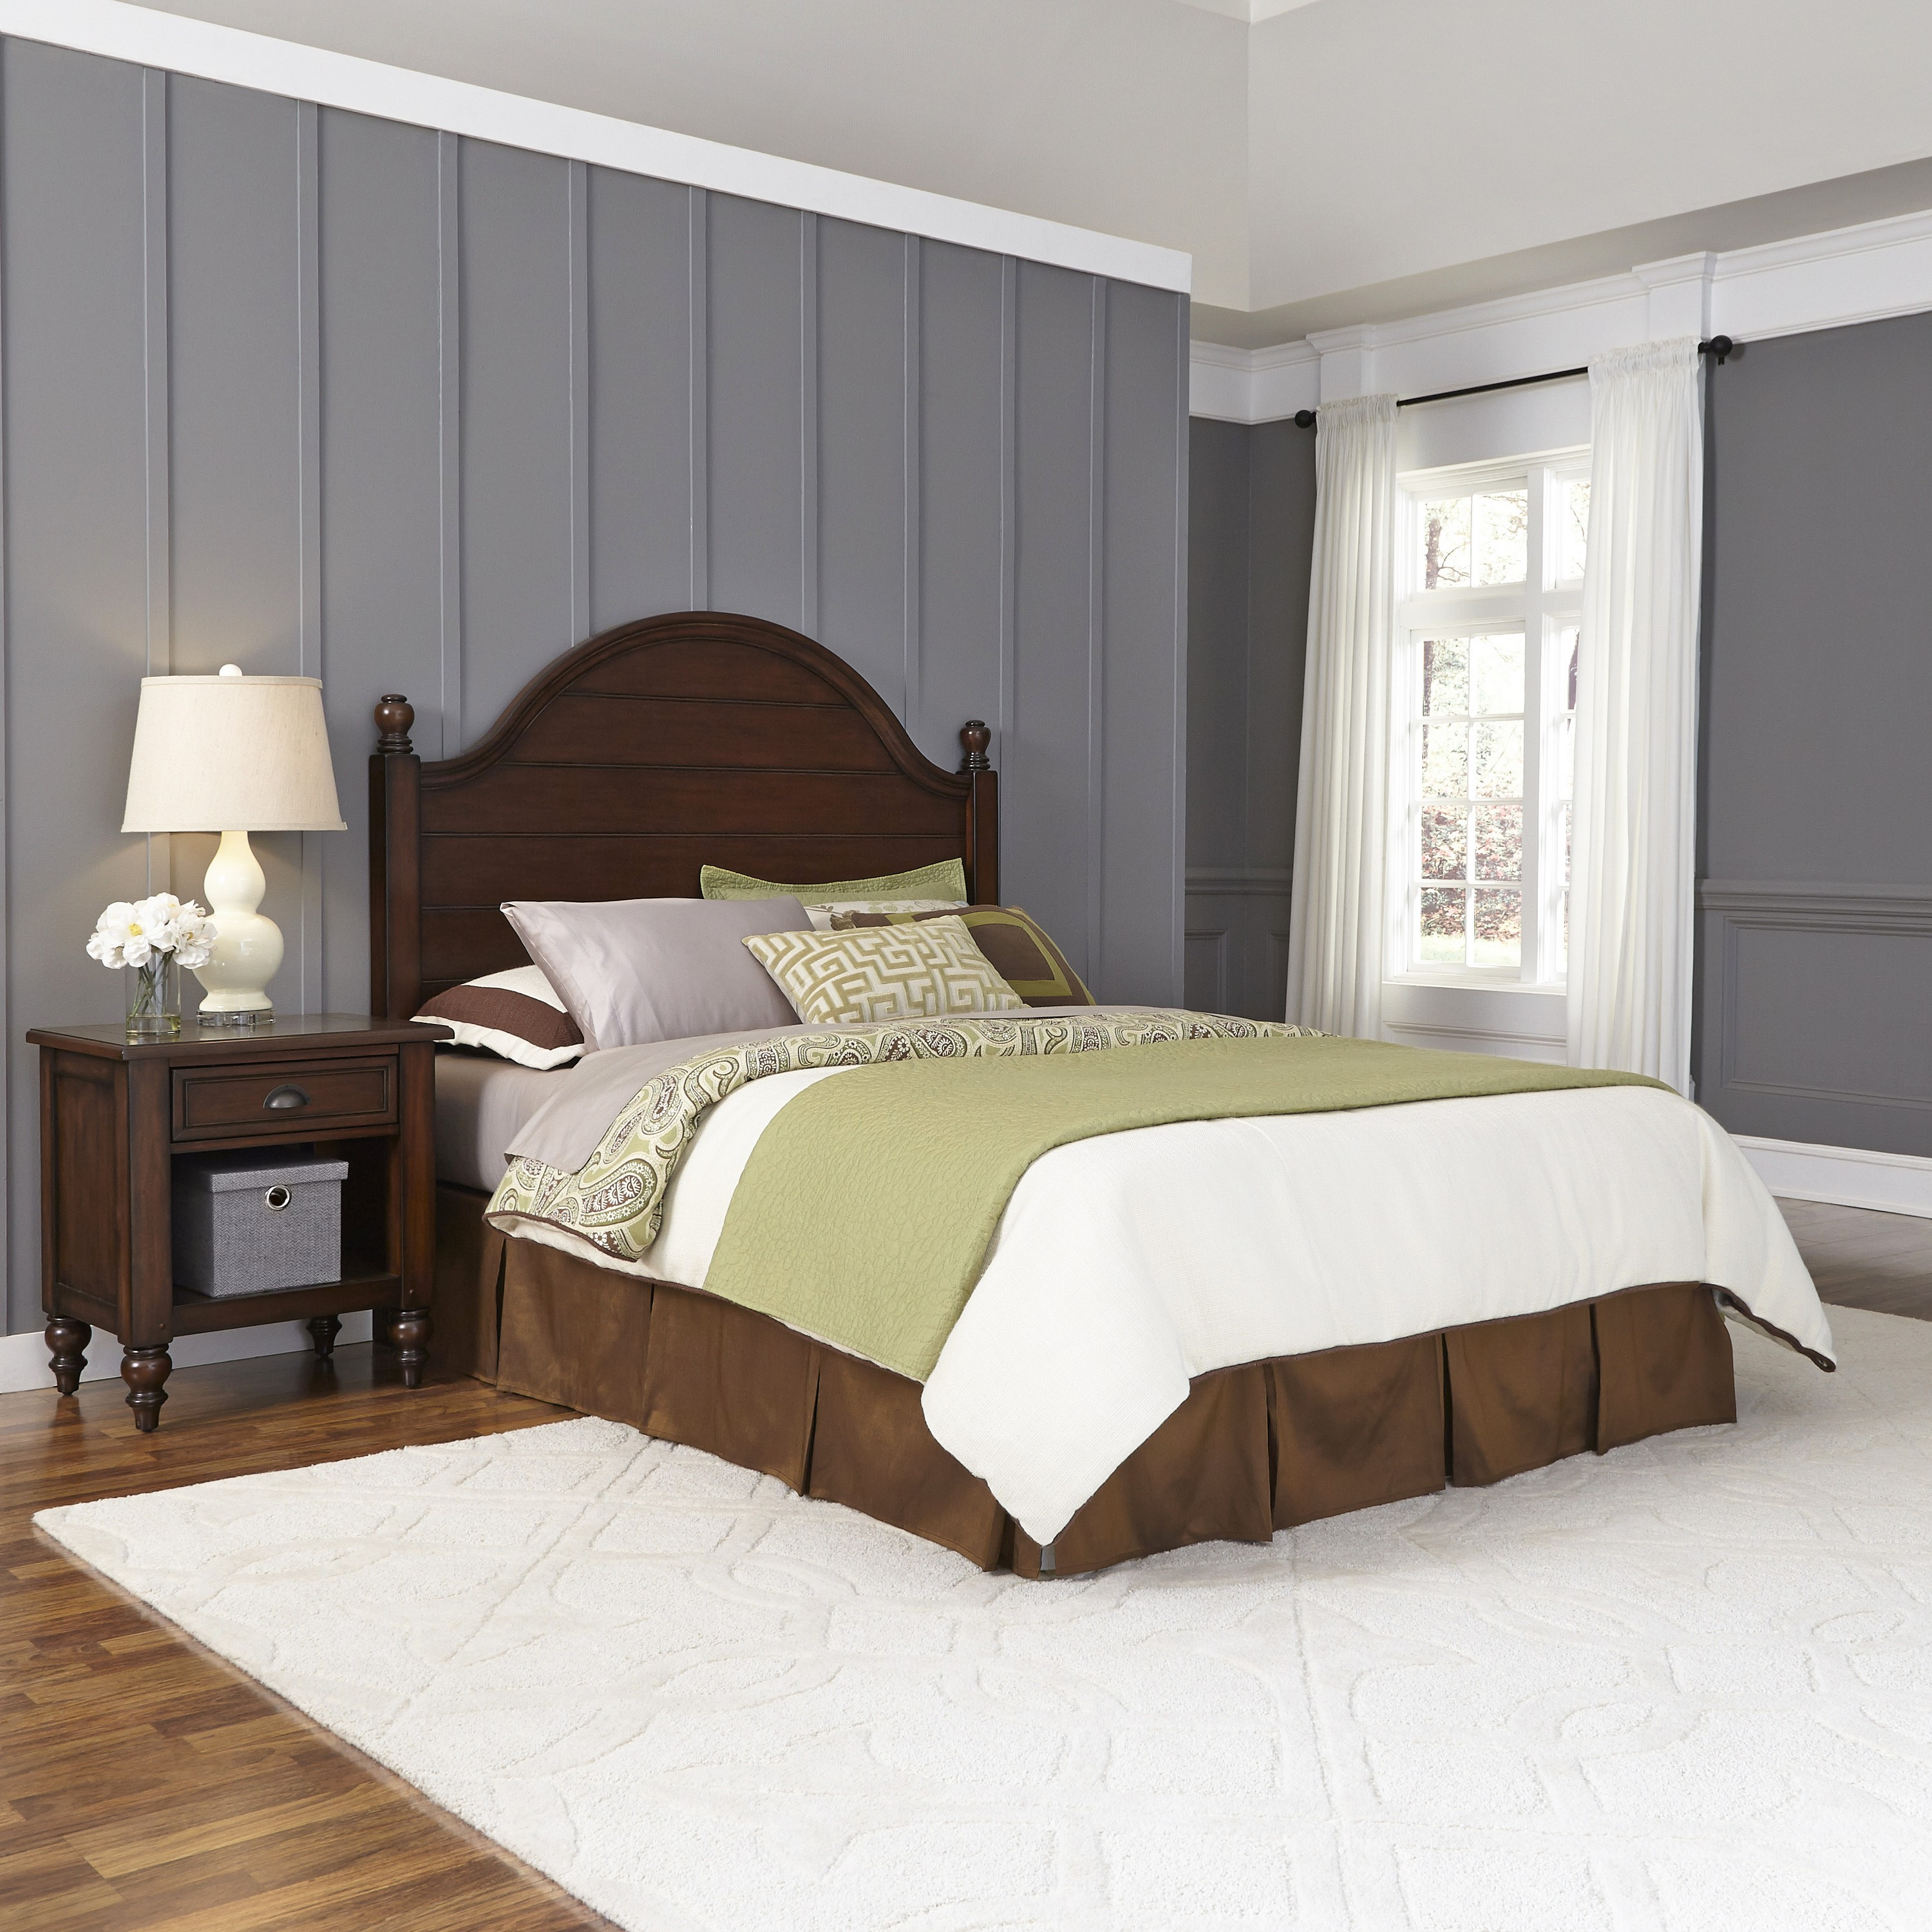 Home Styles Country Comfort Queen Headboard and Night Stand